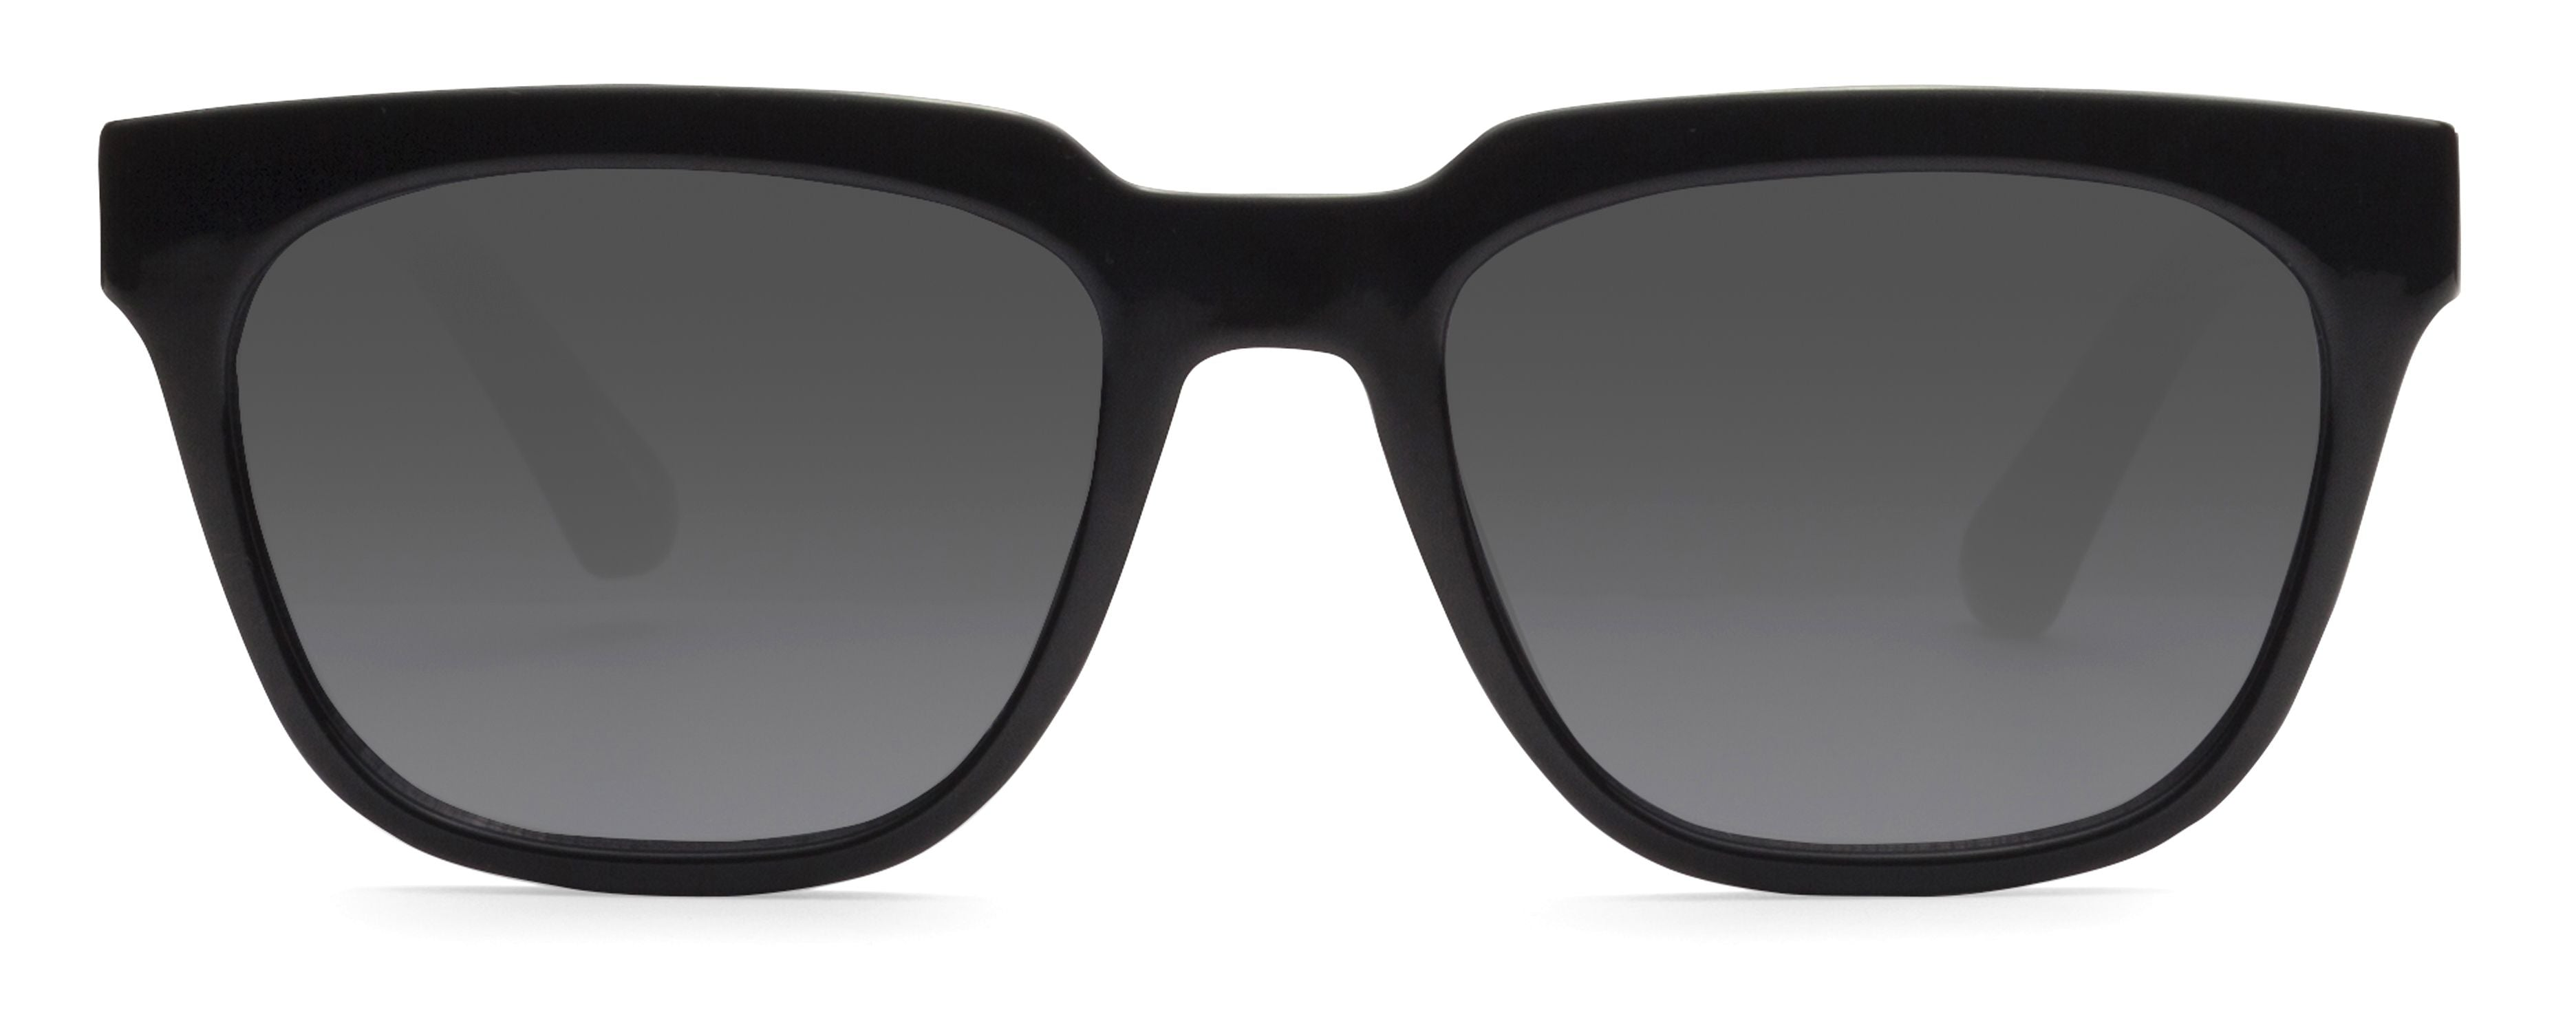 BOOM Kids Sunglasses Black